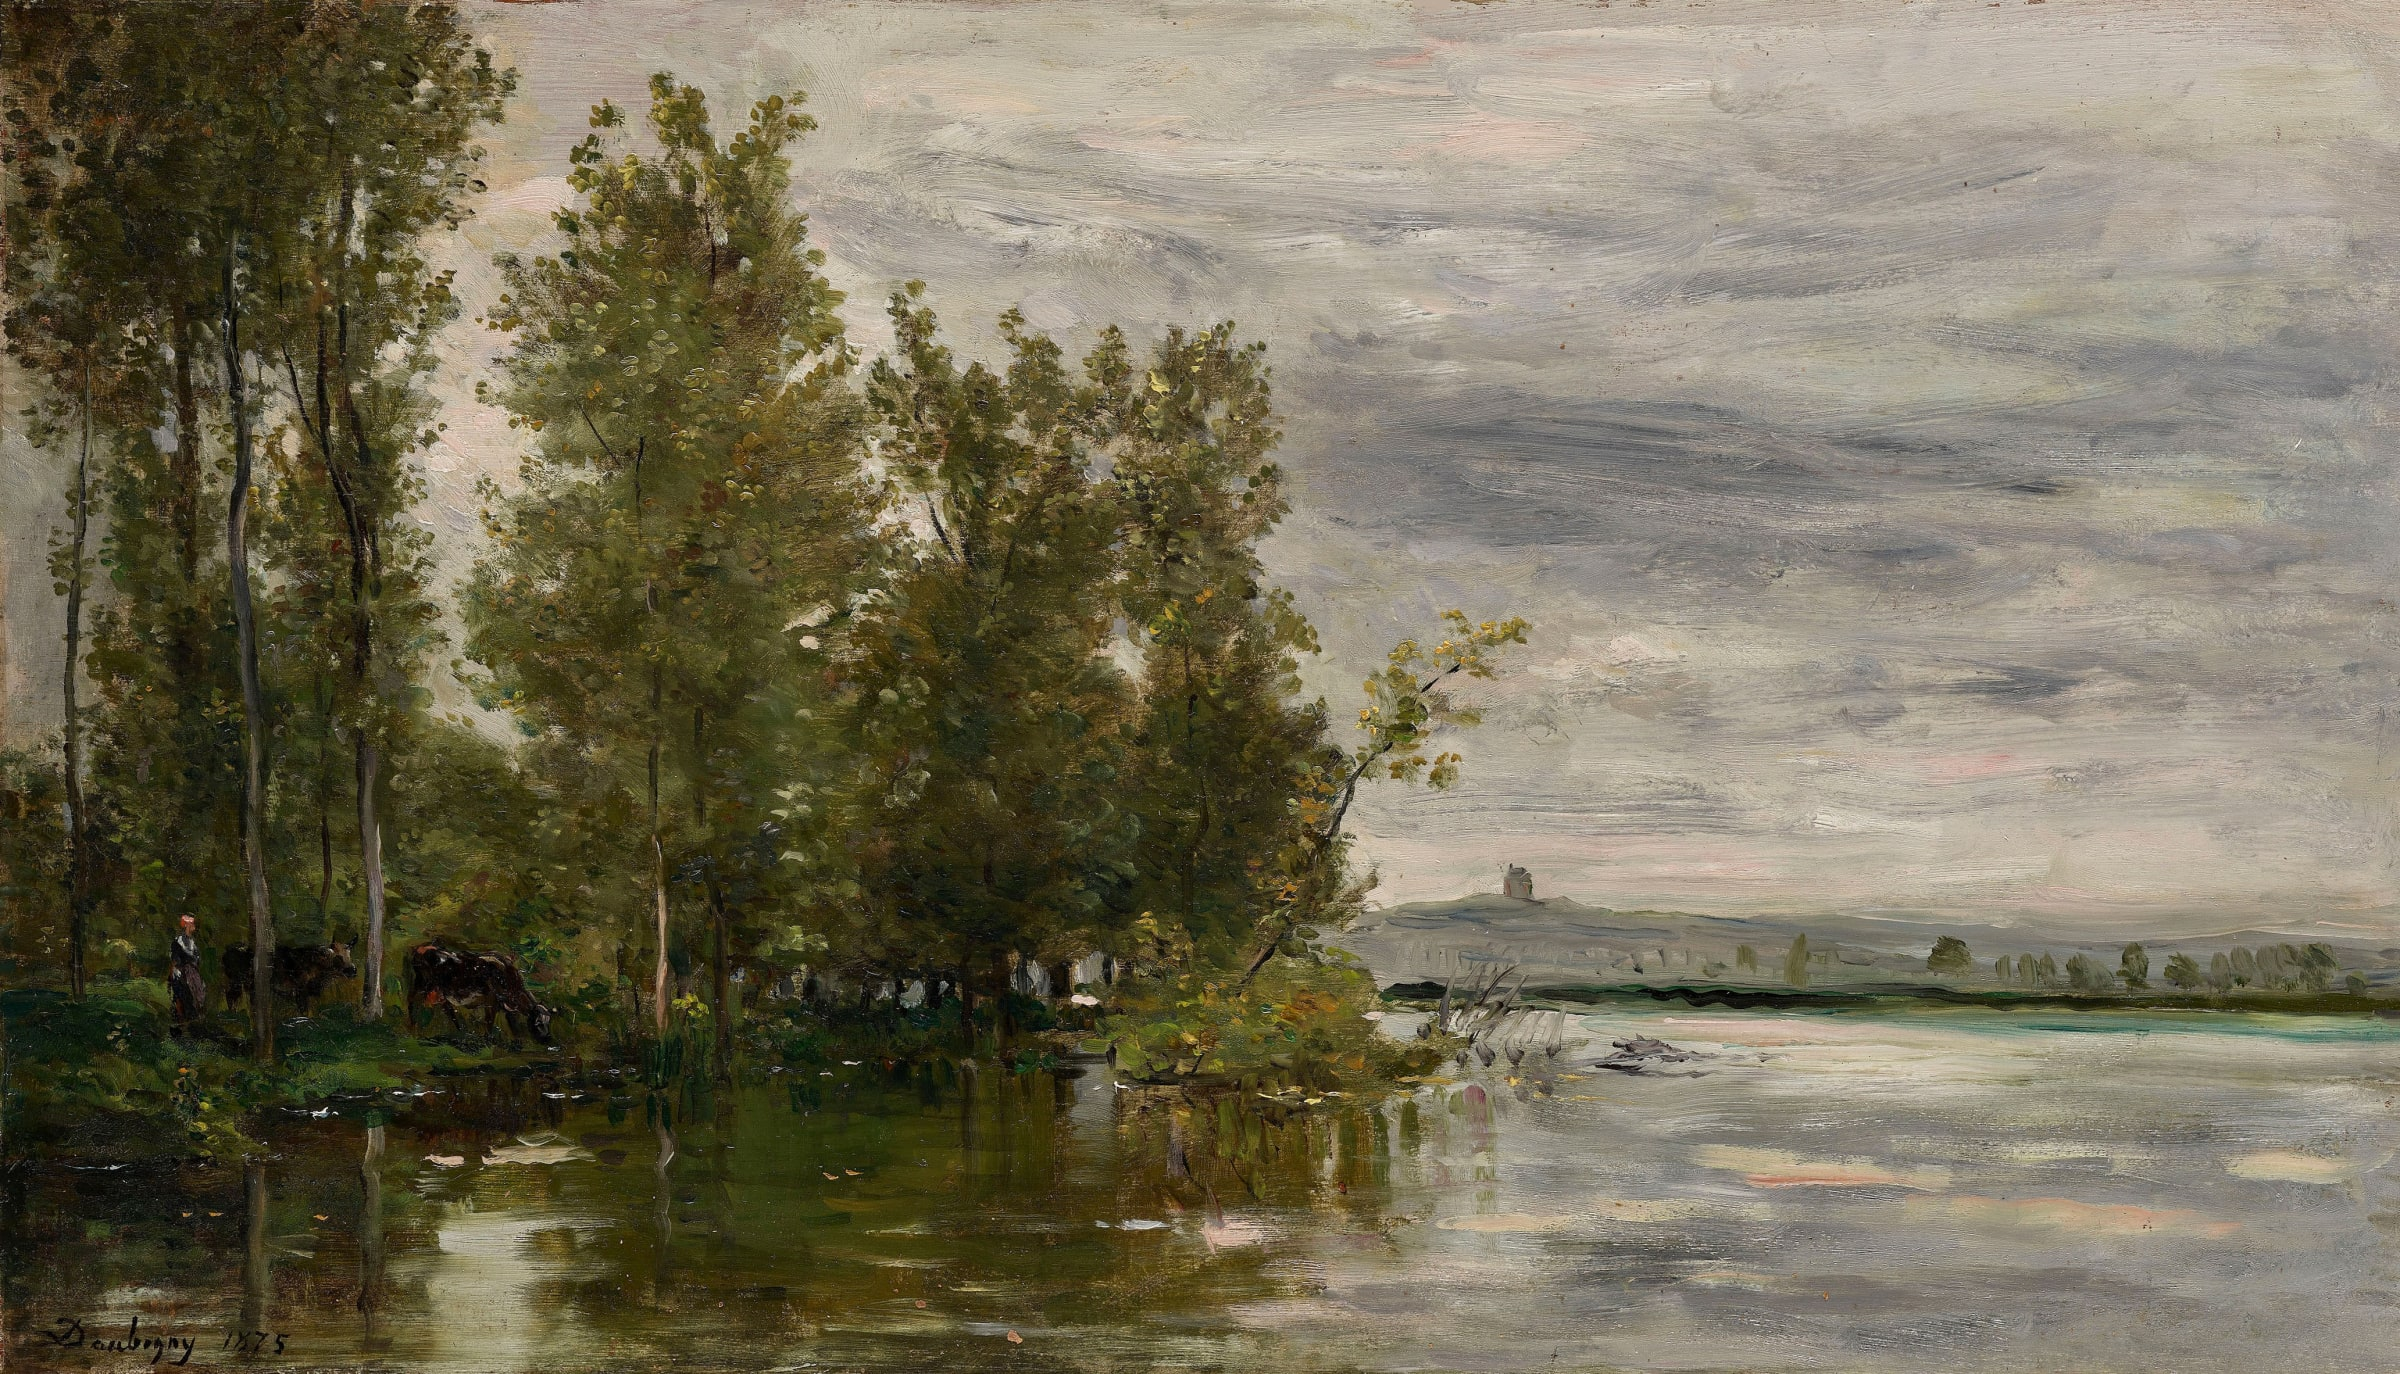 "<span class=""link fancybox-details-link""><a href=""/artists/34-charles-francois-daubigny/works/9386-charles-fran-ois-daubigny-l-inondation-1875/"">View Detail Page</a></span><div class=""artist""><span class=""artist""><strong>Charles François Daubigny</strong></span></div>